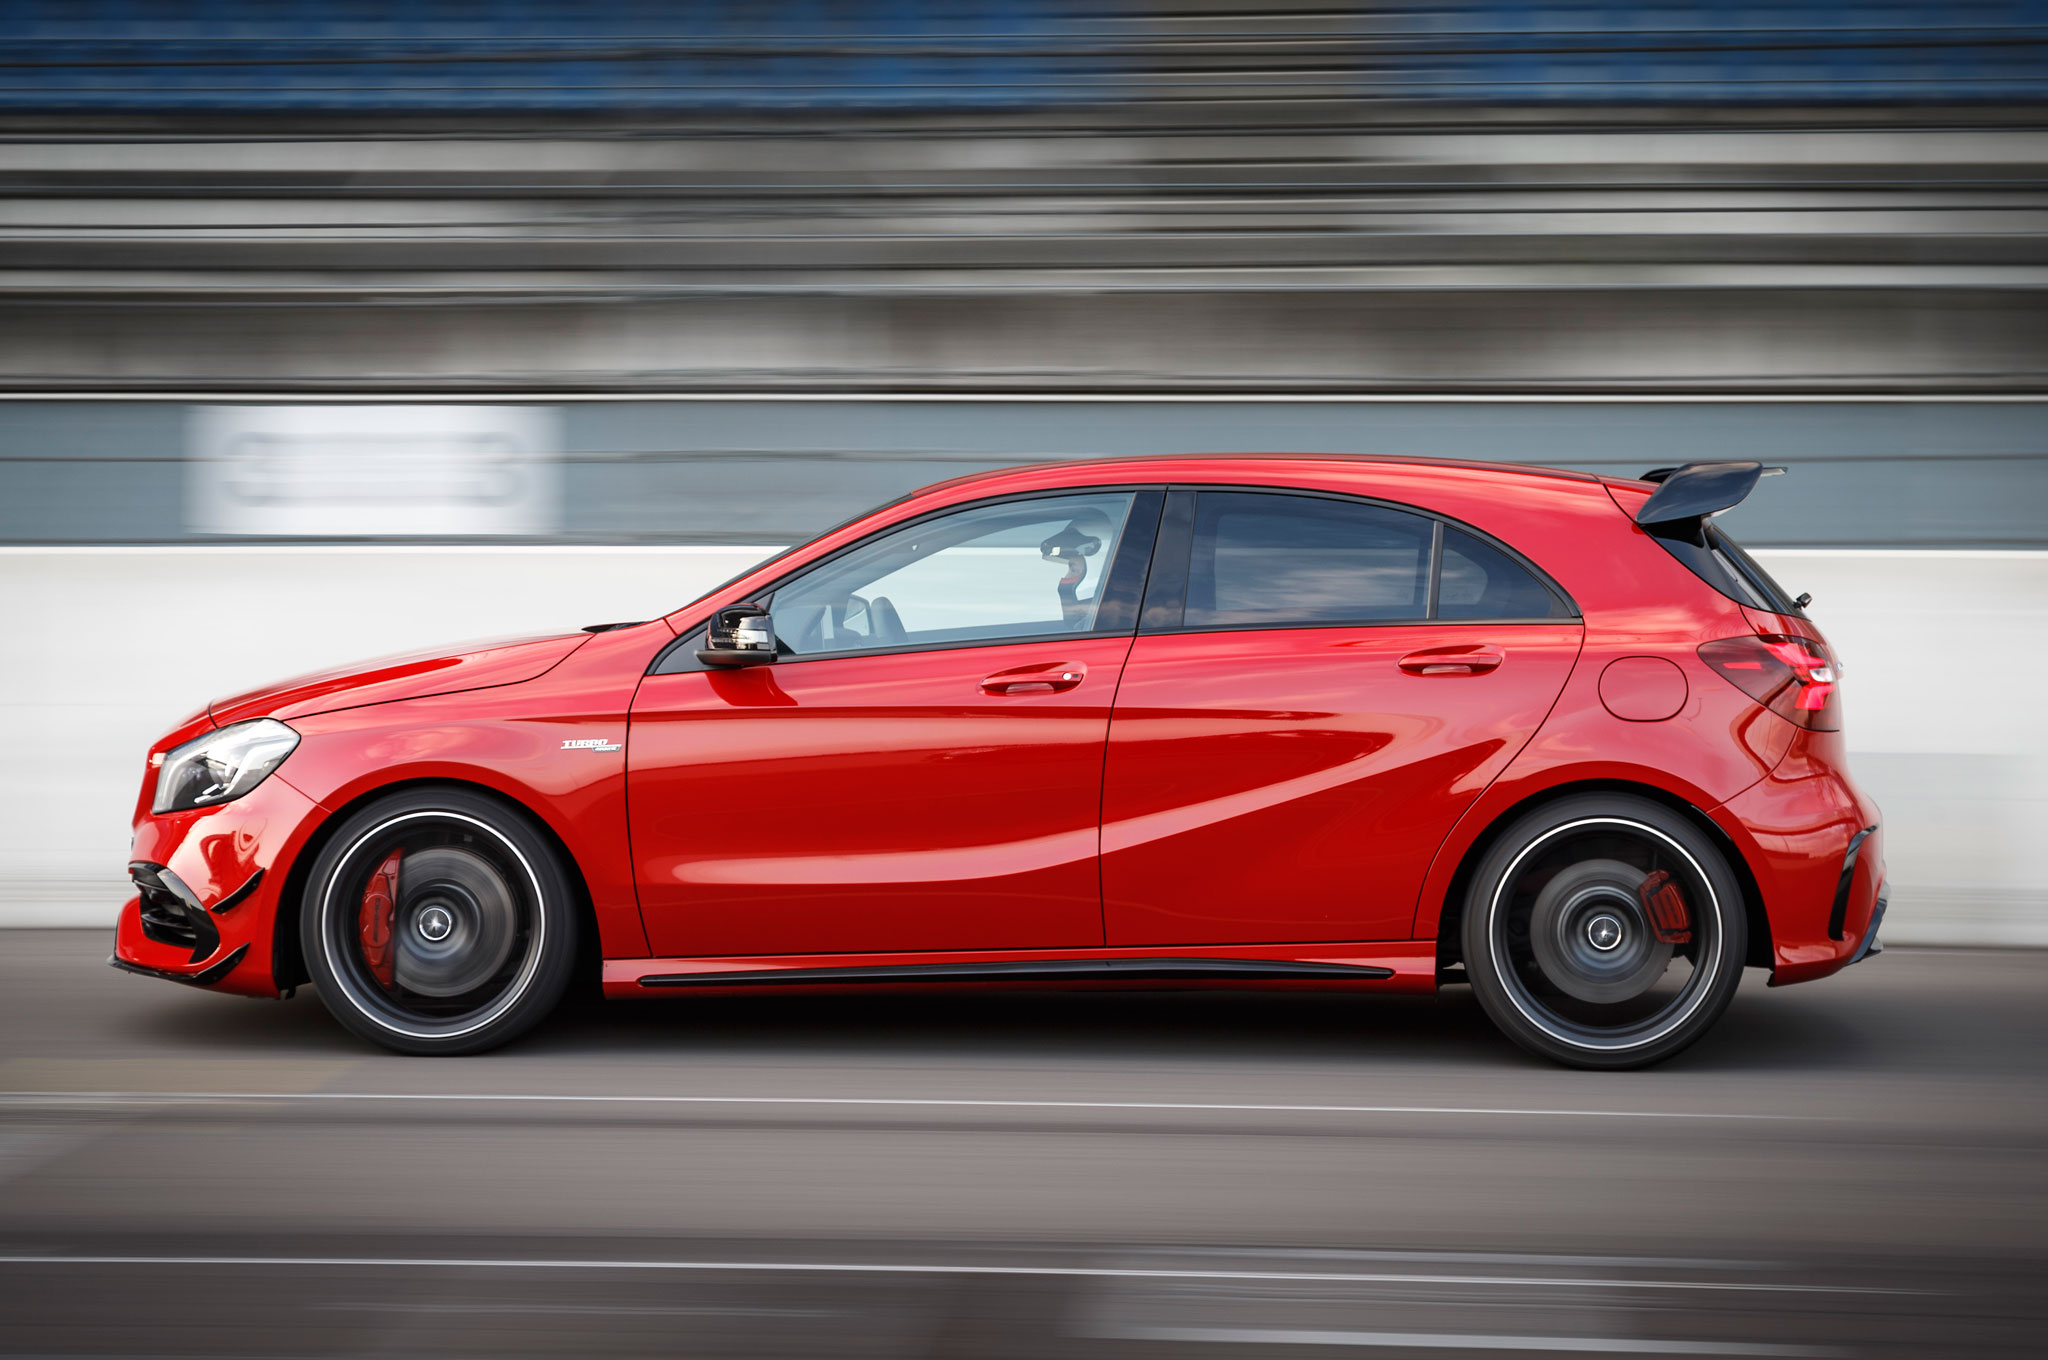 http://st.automobilemag.com/uploads/sites/11/2015/09/2016-Mercedes-AMG-A45-4Matic-side-profile-05.jpg